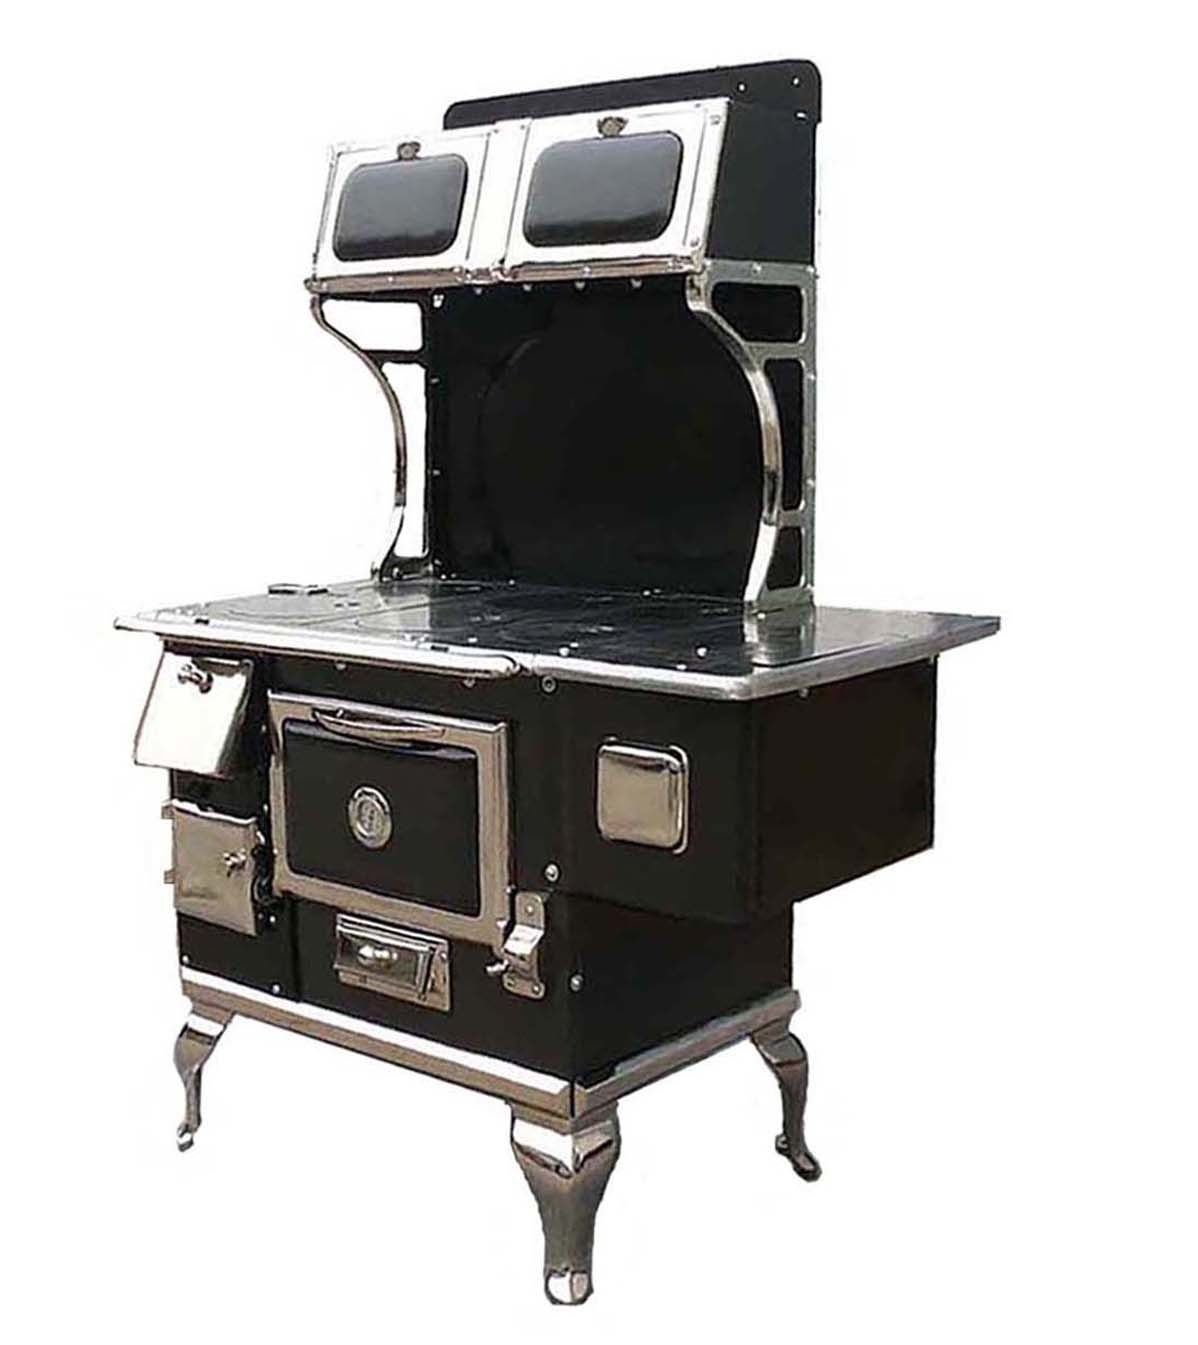 antique cook stove for sale - Buy  Sell antique cook stove across